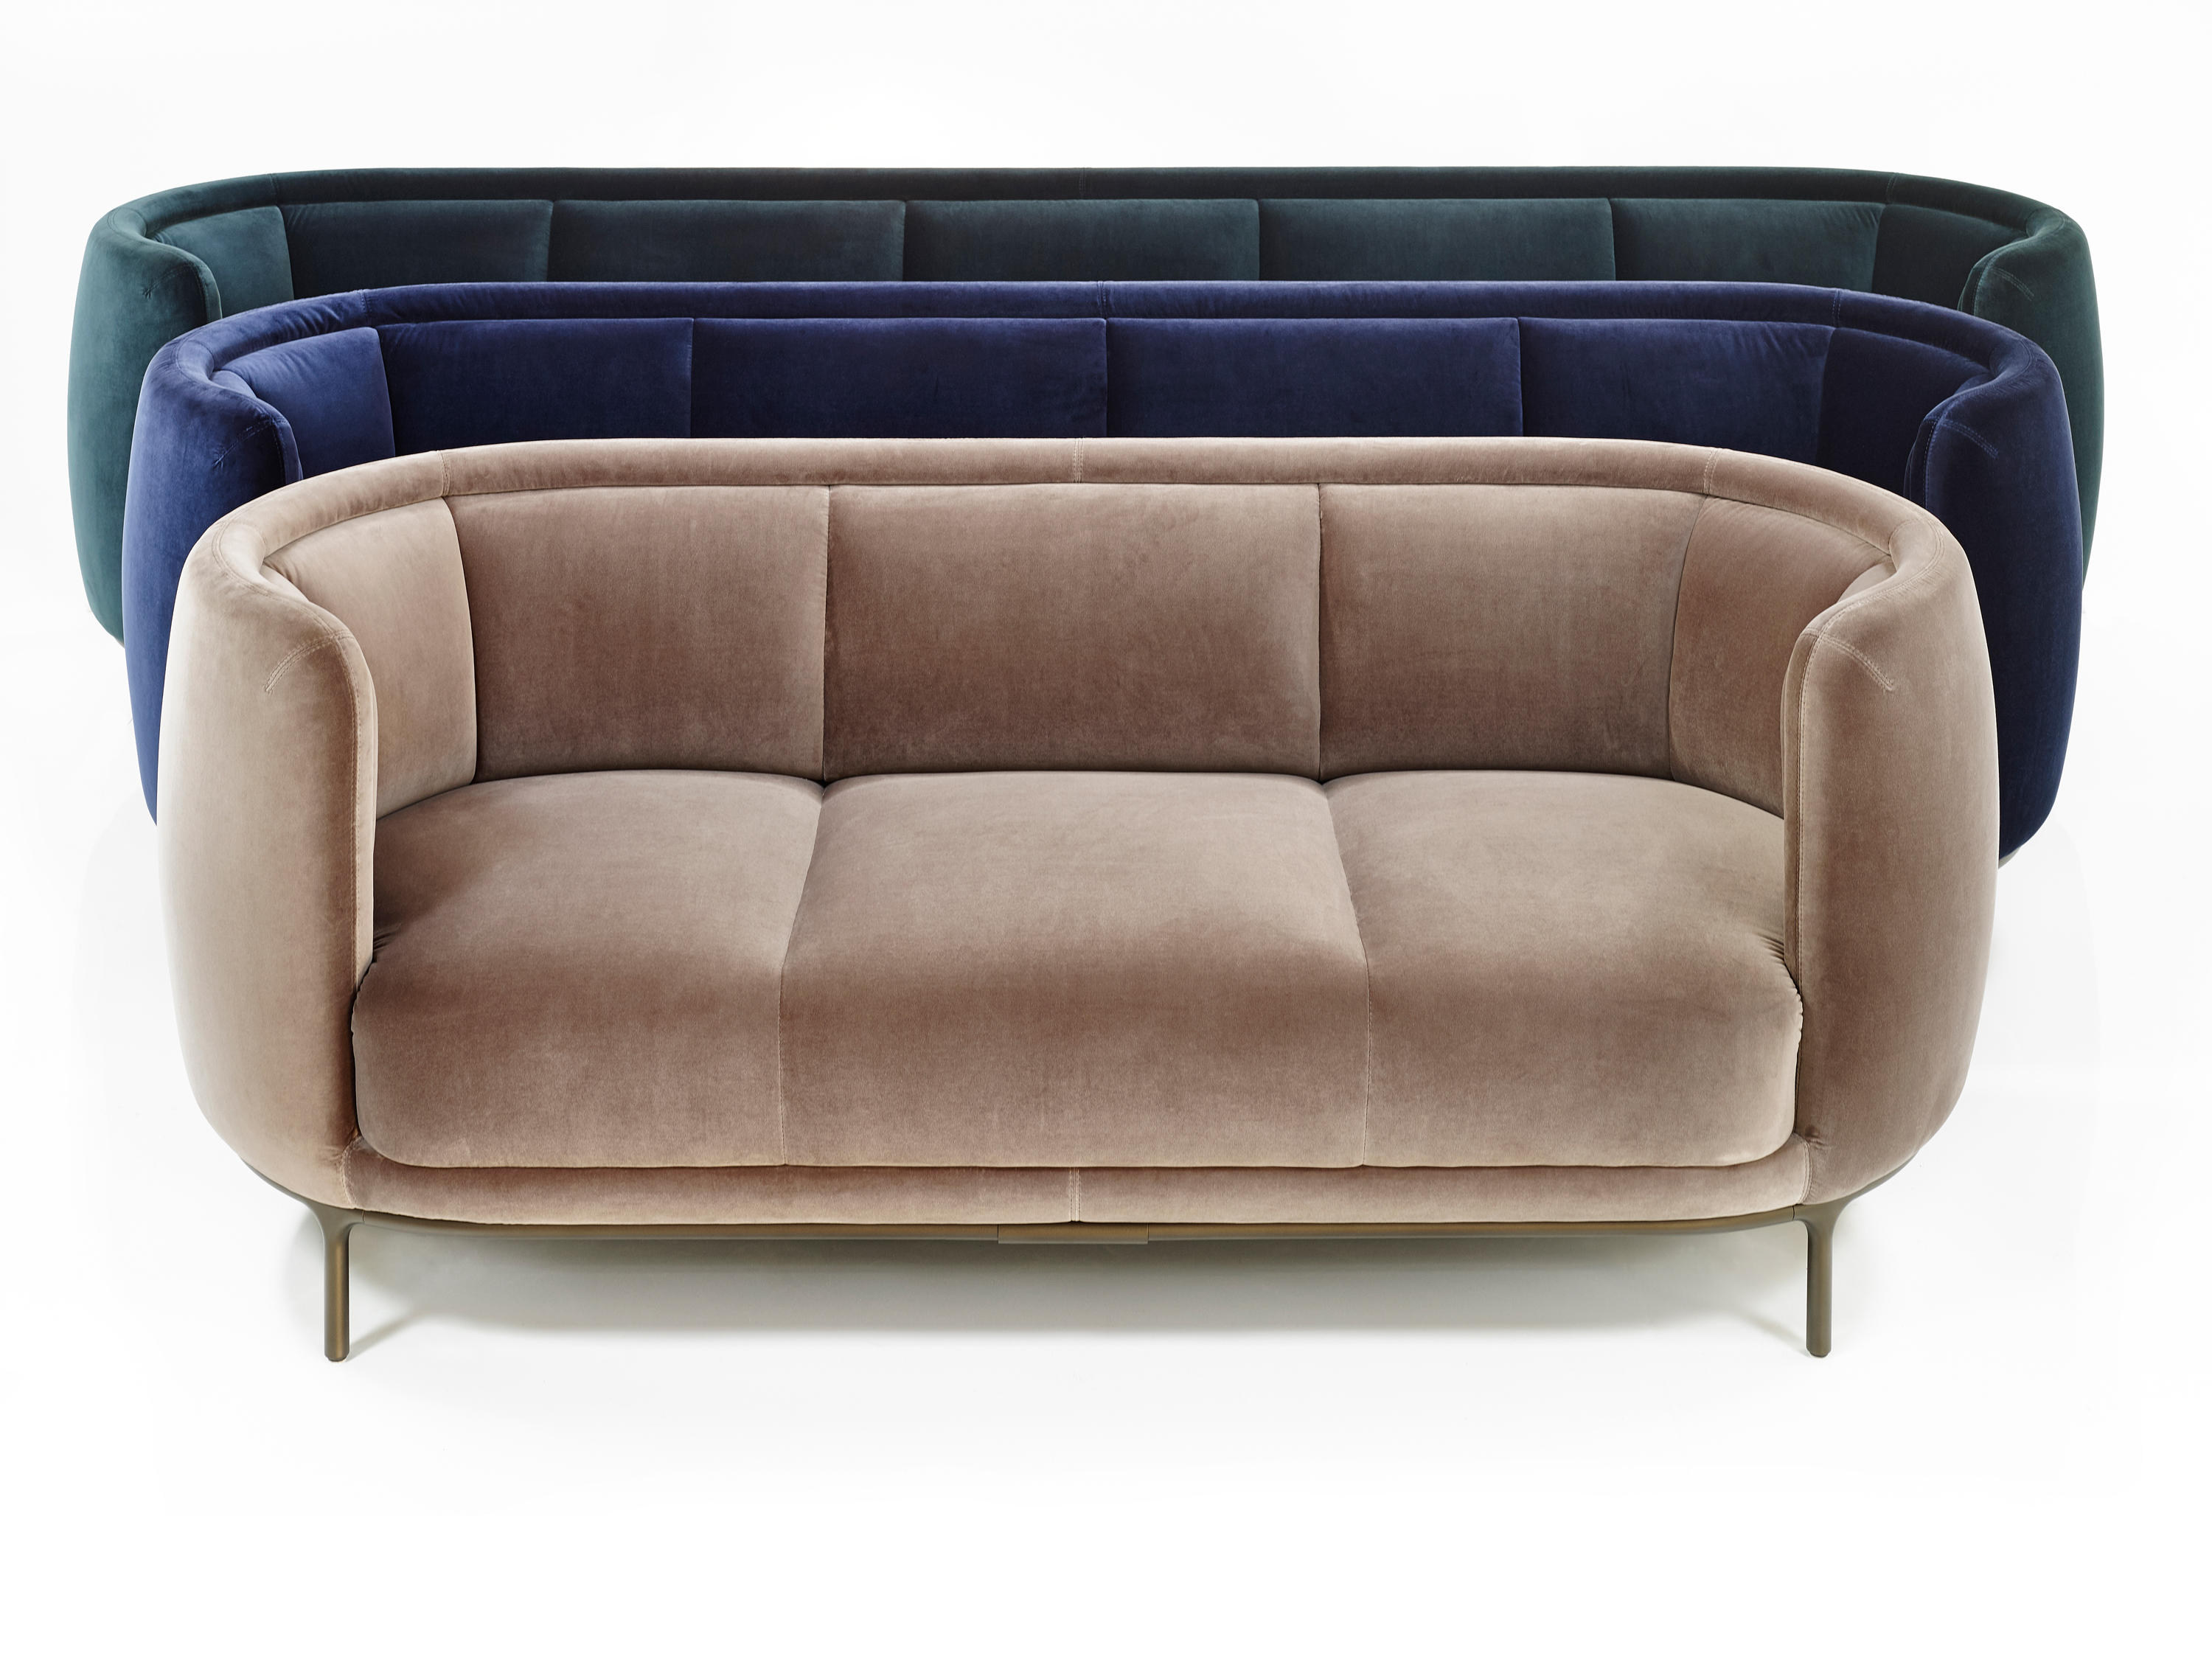 Vuelta 72 lounge chairs from wittmann architonic for Couch und sofa fürth